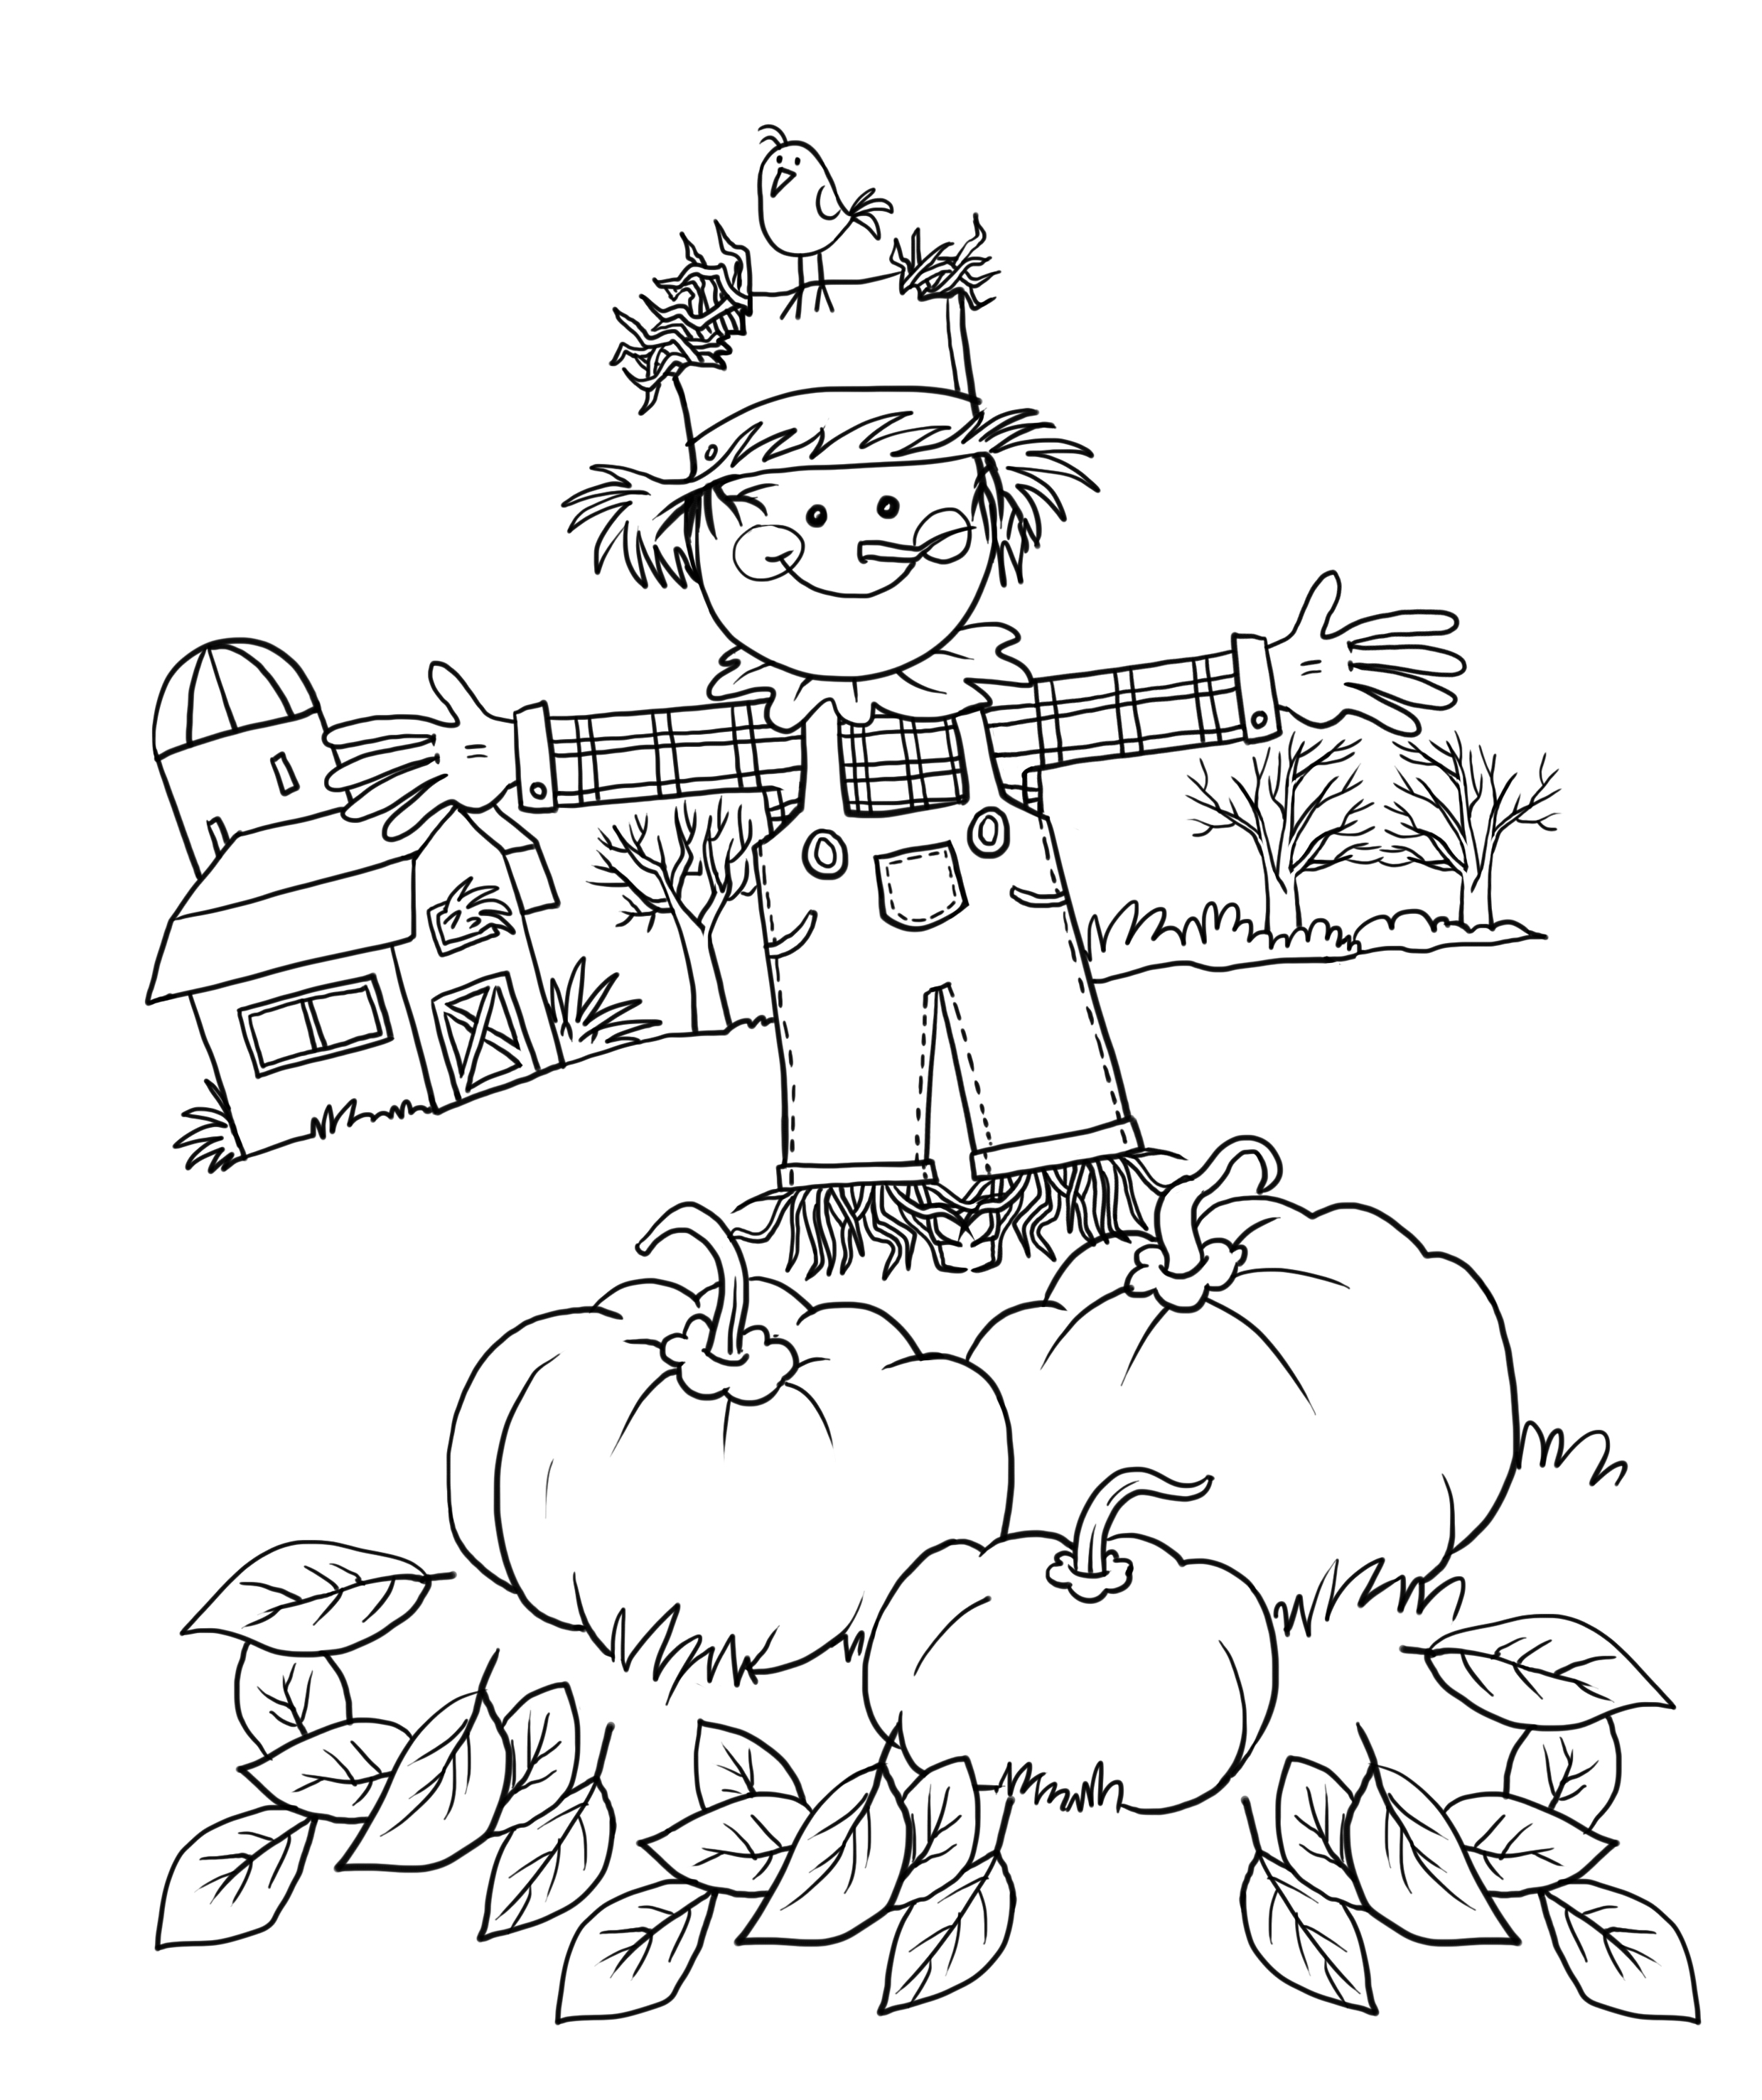 2479x2955 Fall Coloring Page Print Fall Pictures To Color At, Fall Coloring